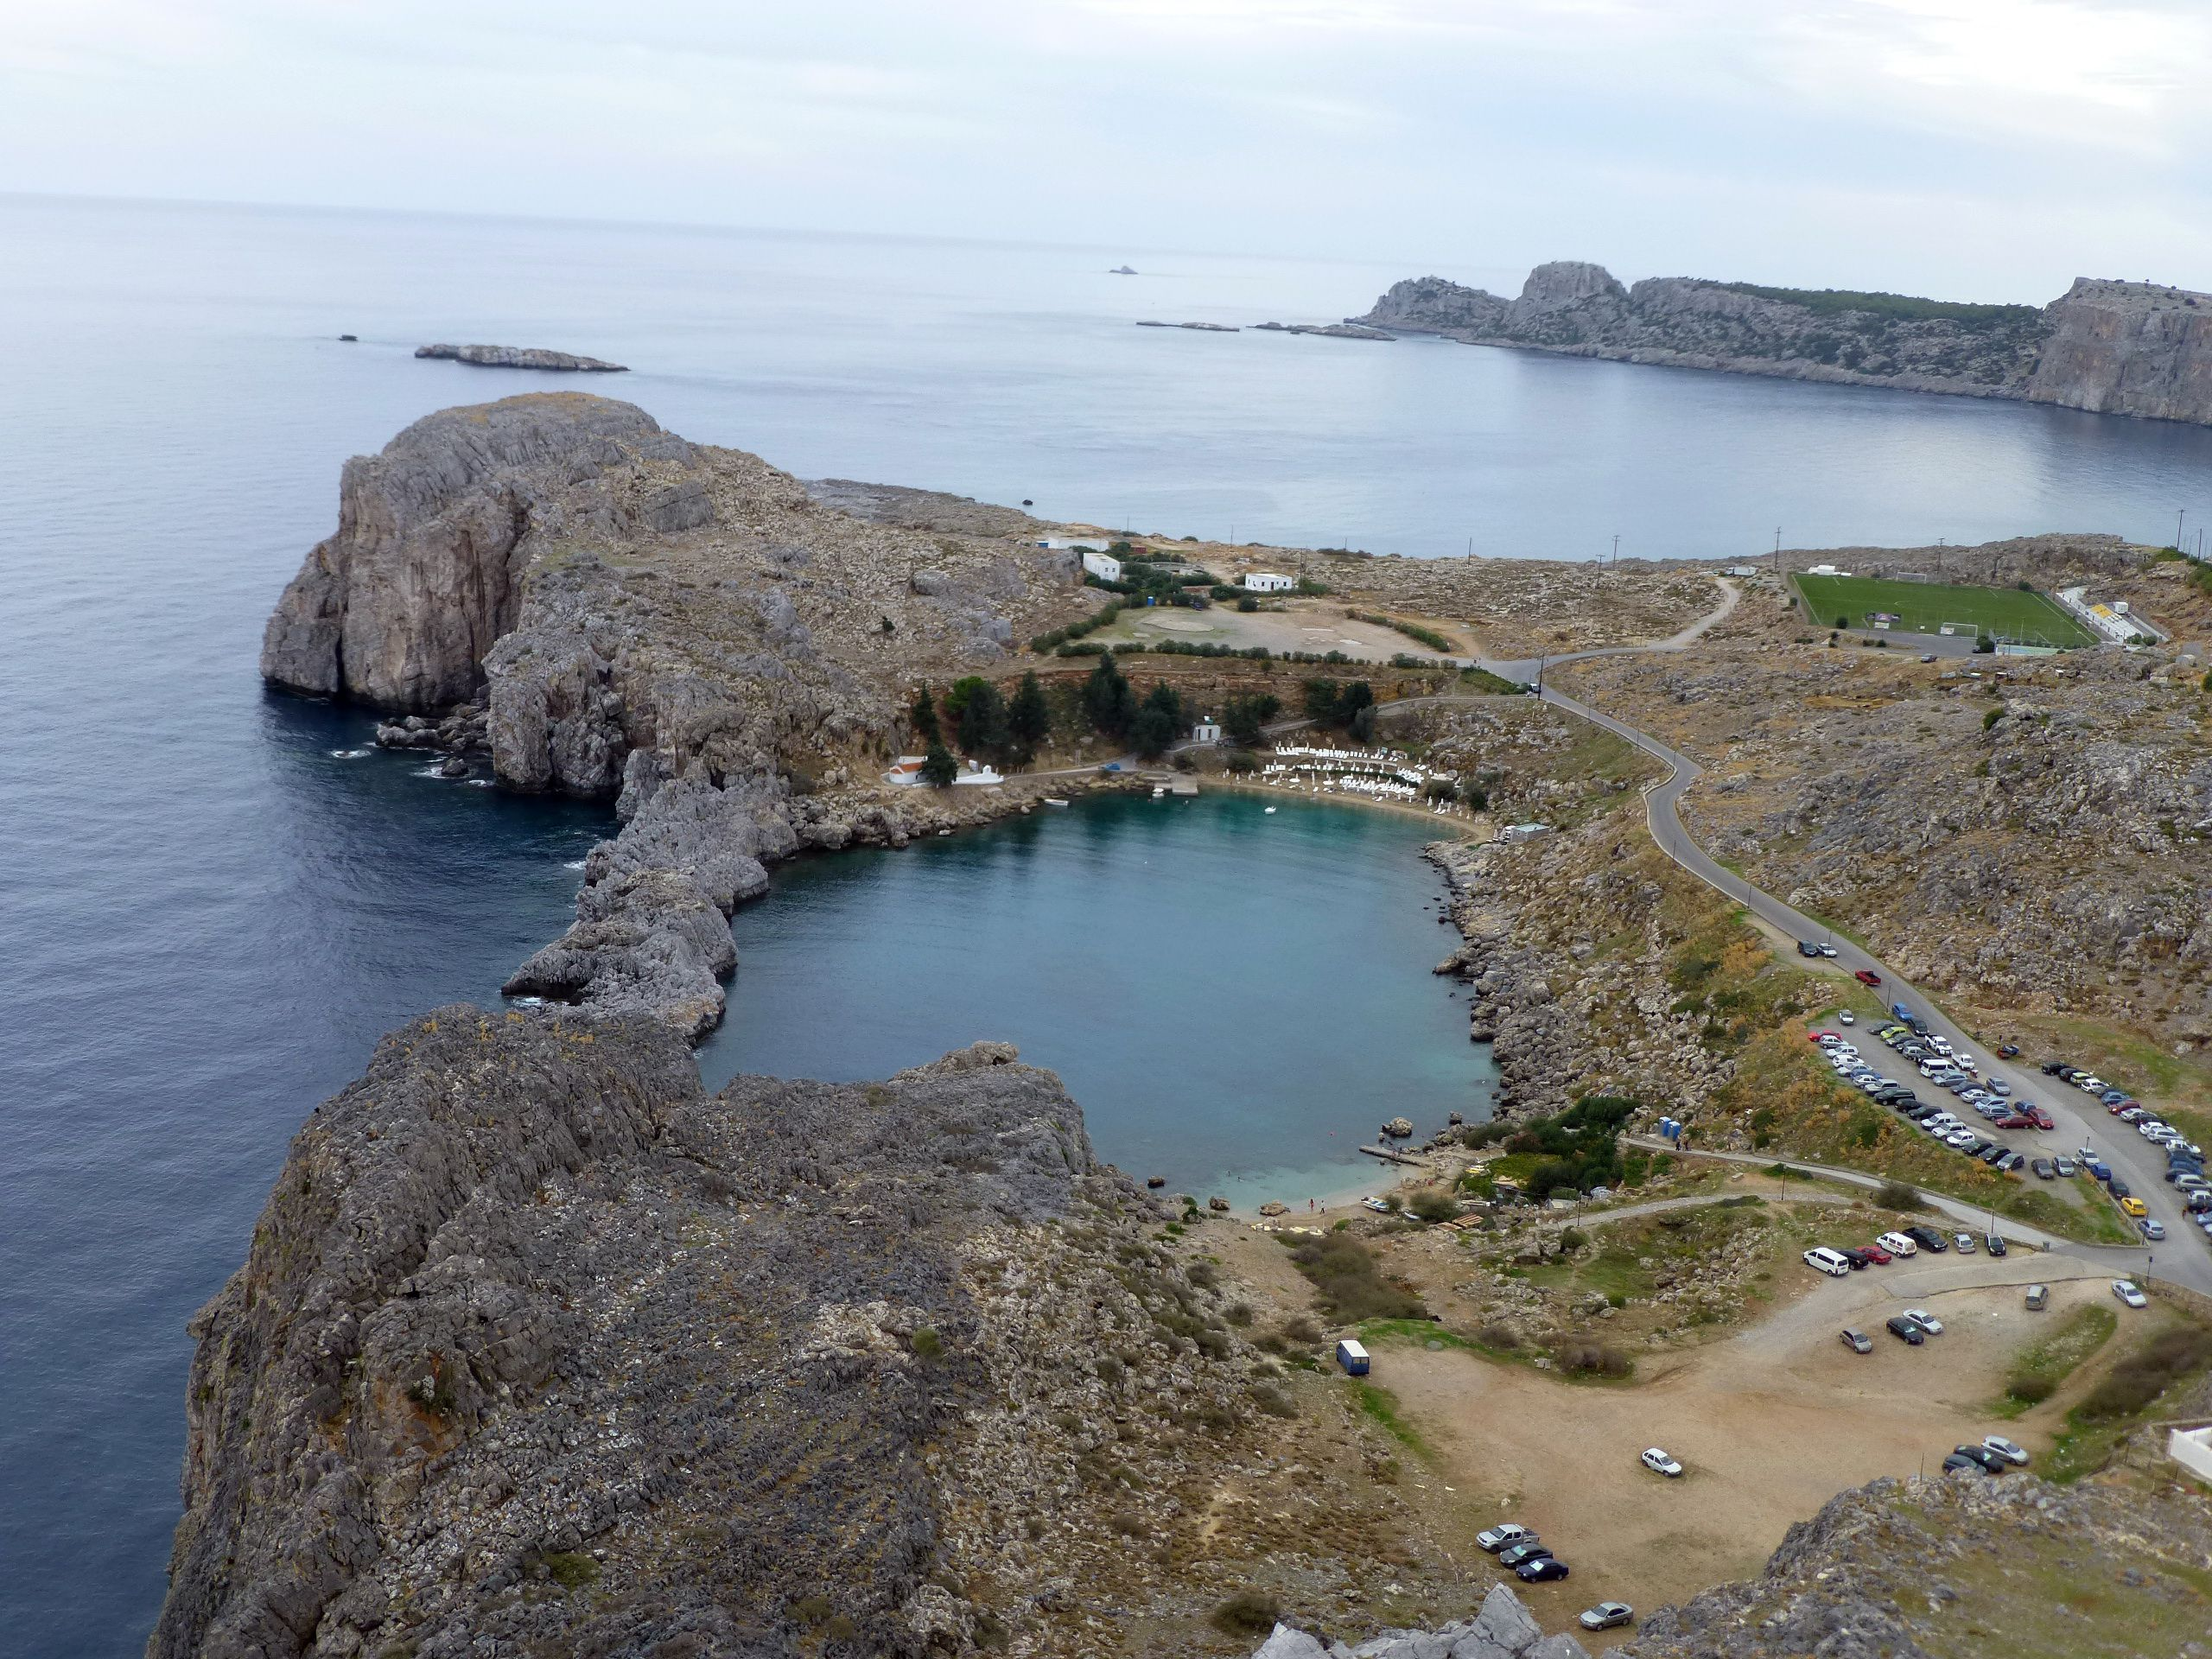 St. Paul's Bay at the Acropolis of Lindos, Greece on Rhodes